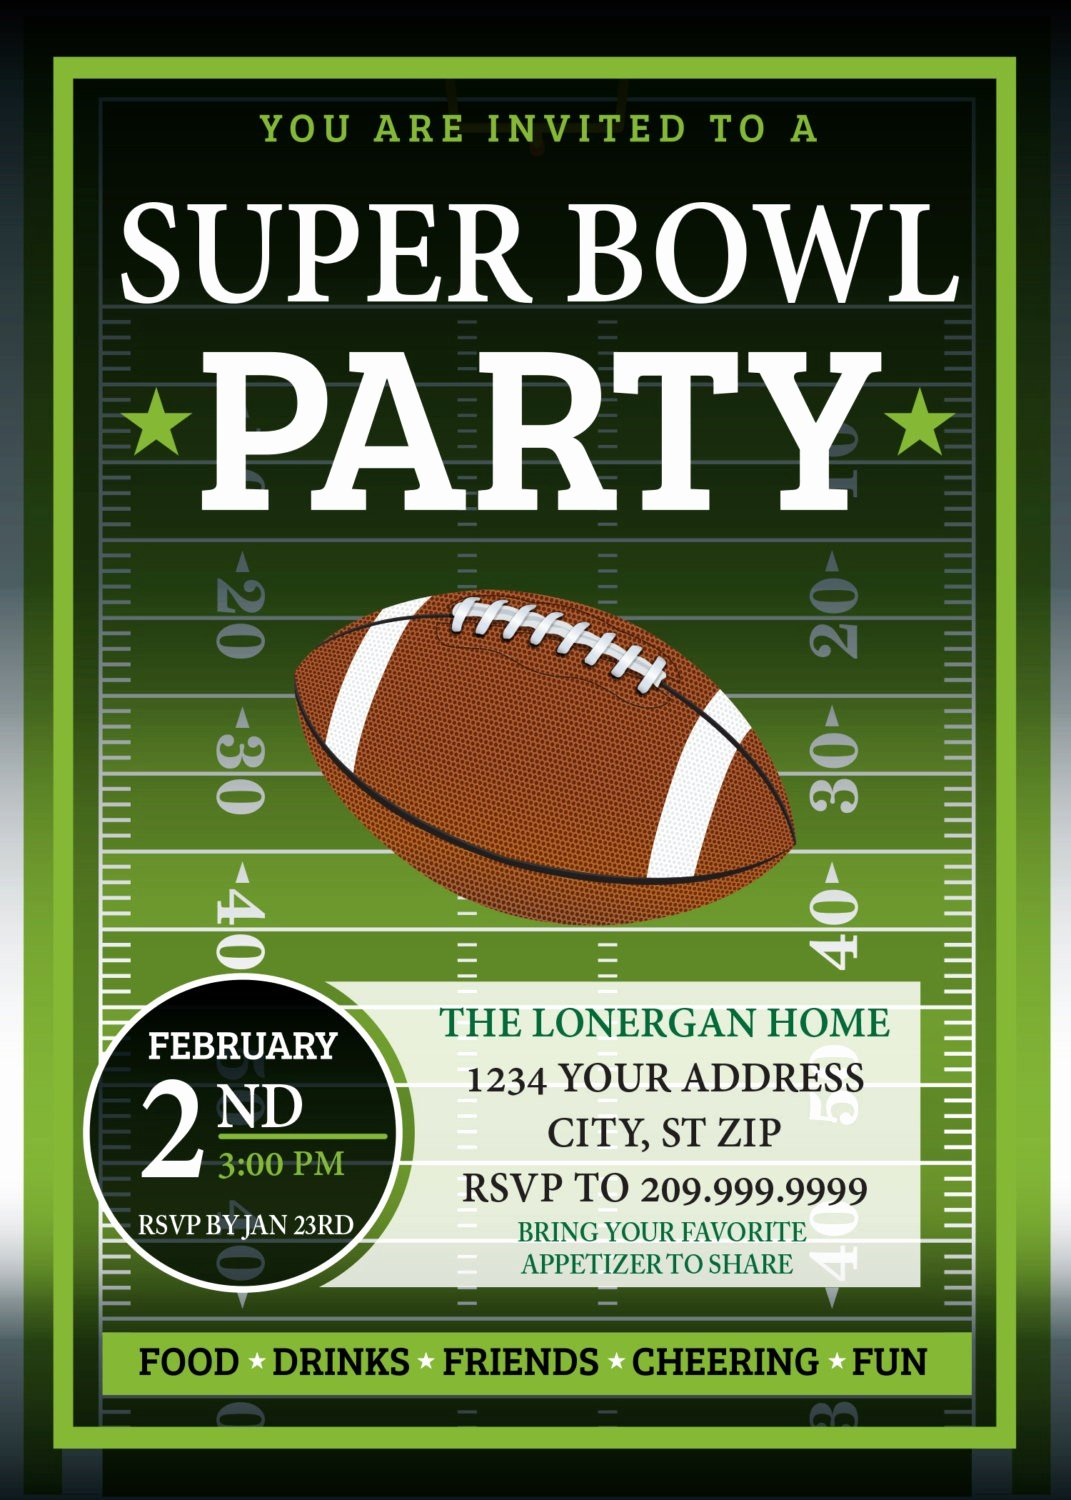 Superbowl Party Invitation Template Luxury Super Bowl Party Invitation Template